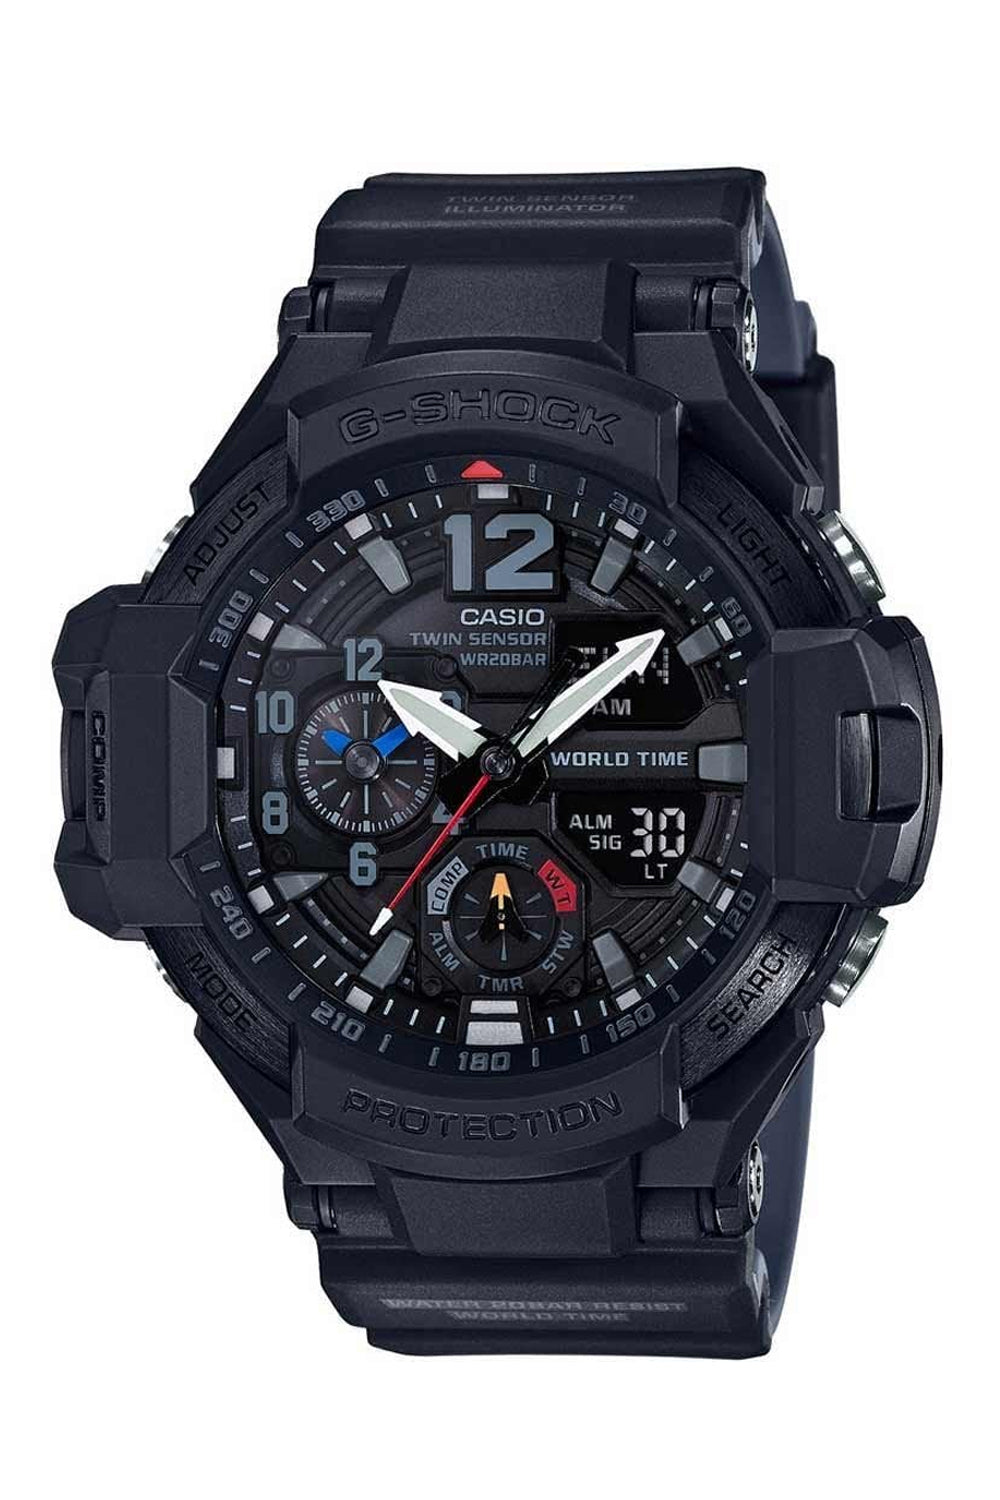 CASIO GA-1100-1A1ER G-Shock Air Master